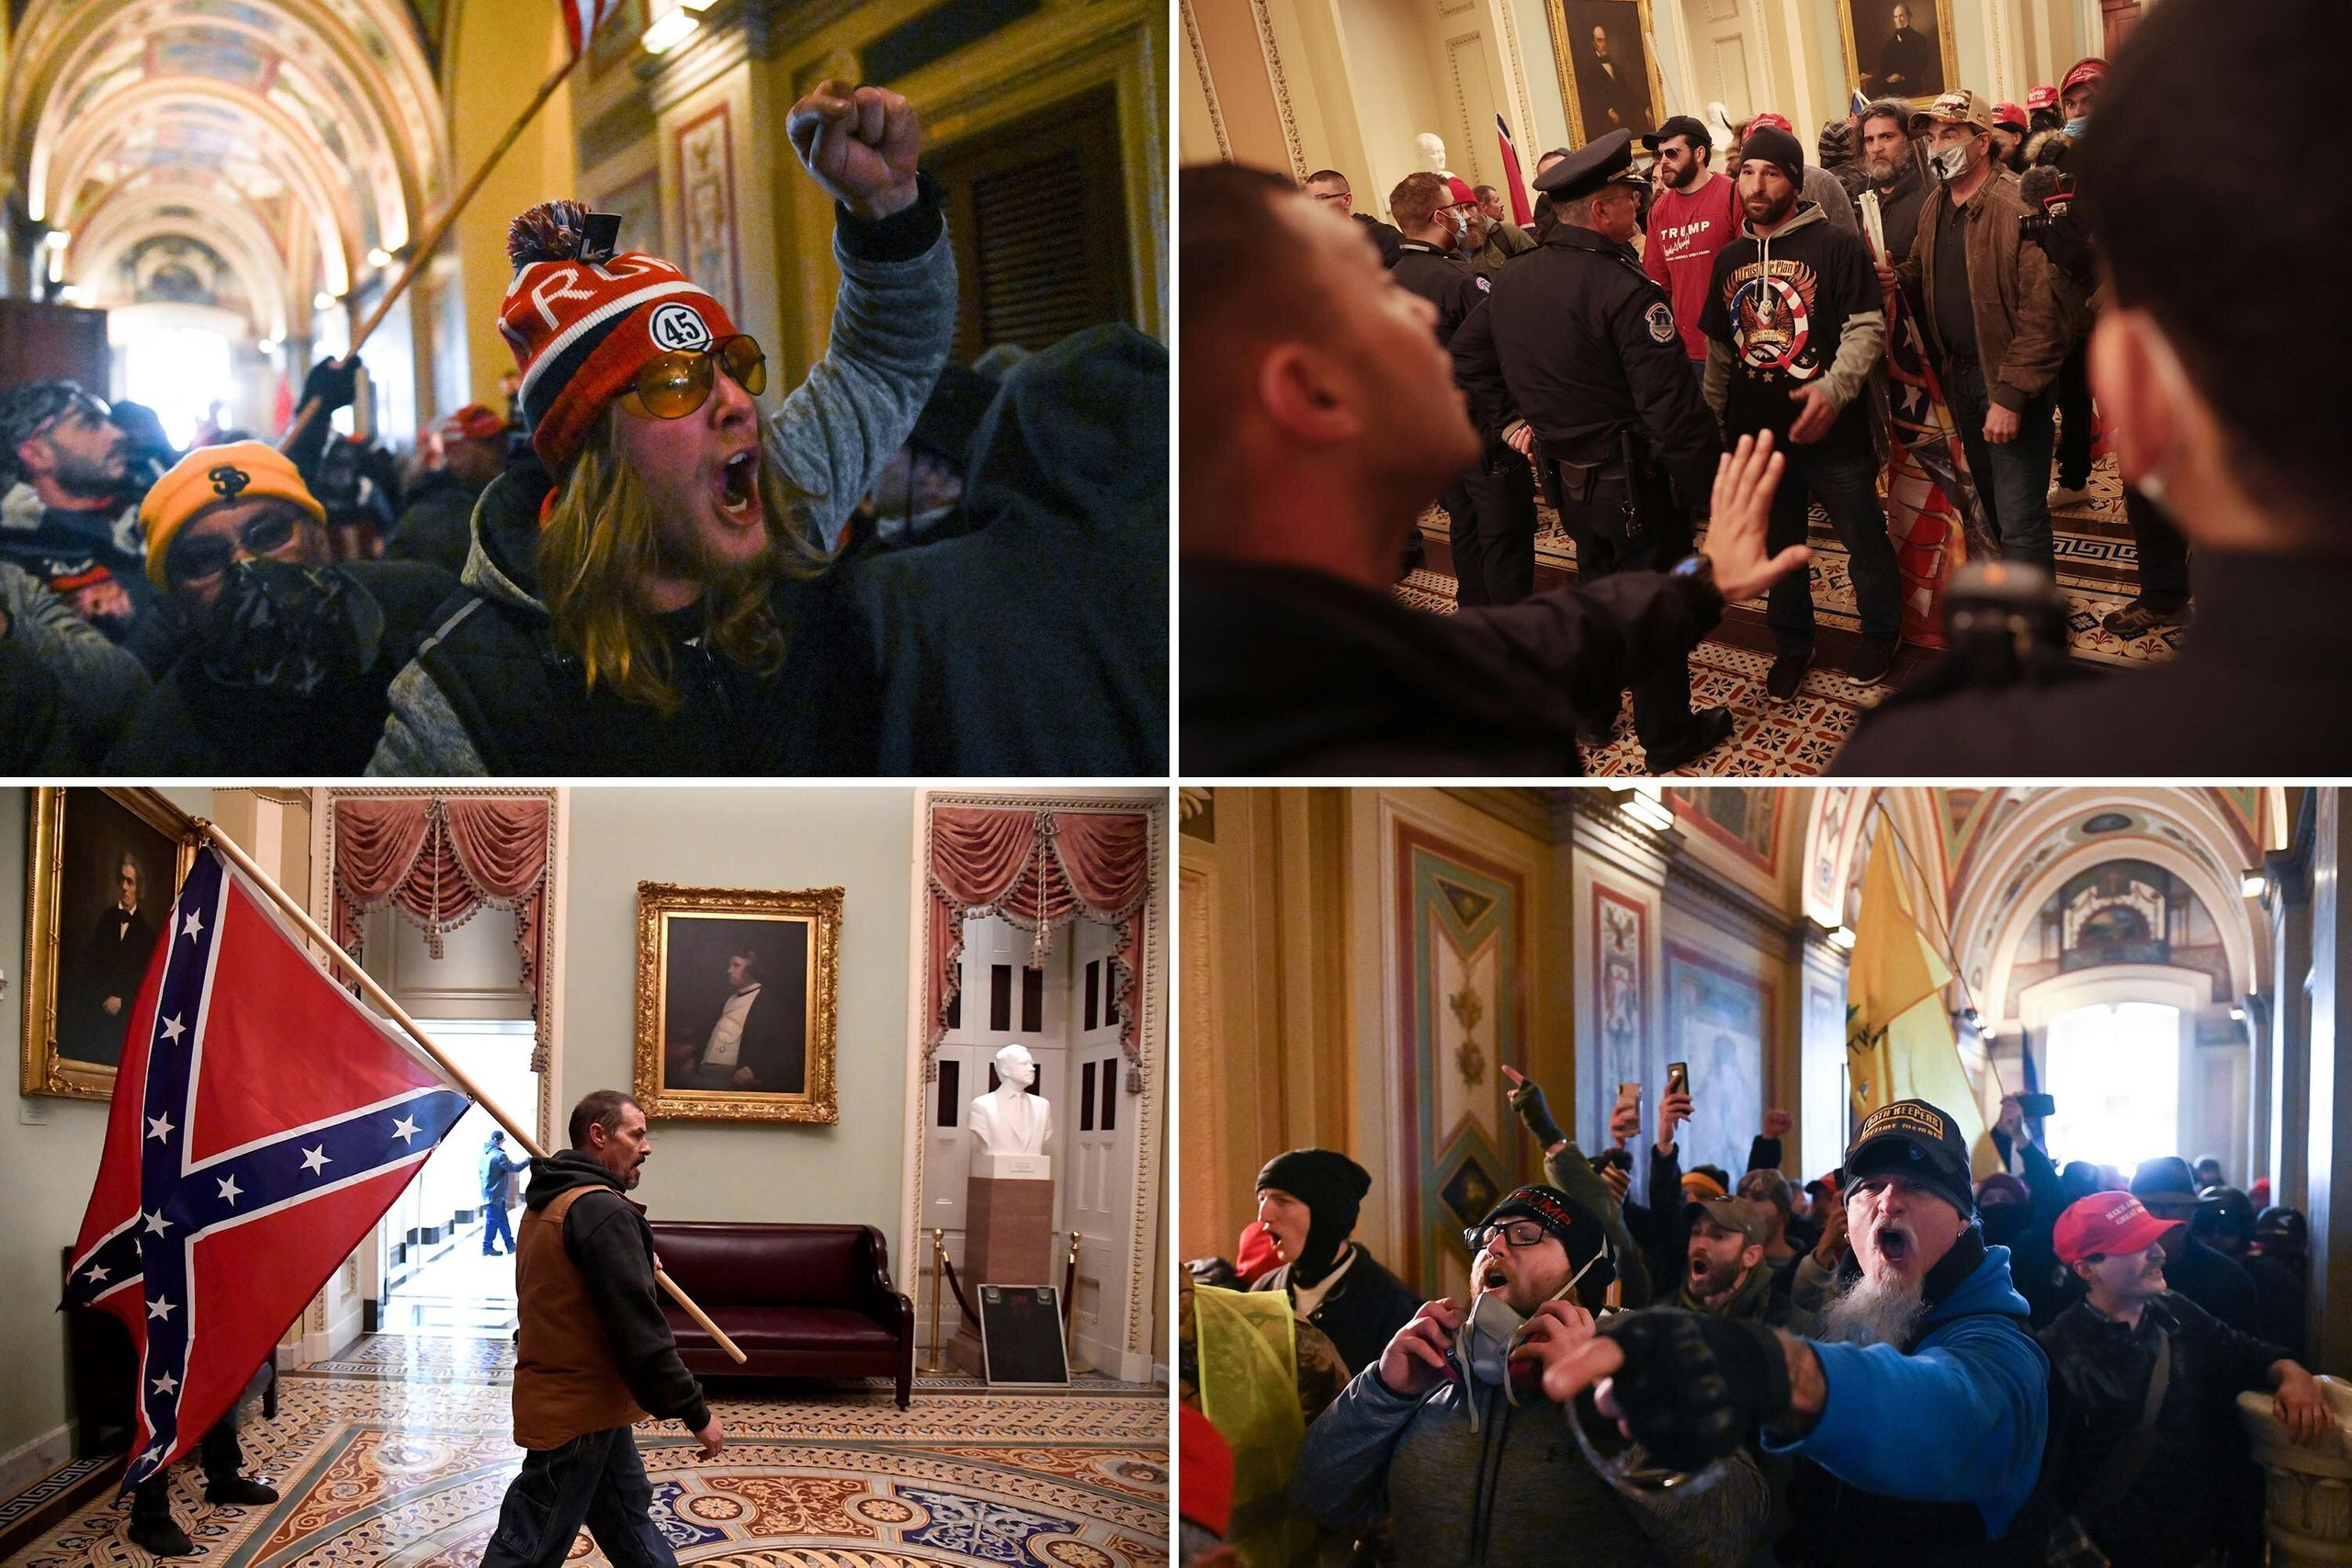 Top left: Trump supporters riot inside the U.S. Capitol on Jan. 6, 2021. Top right: Protesters interact with Capitol Police d